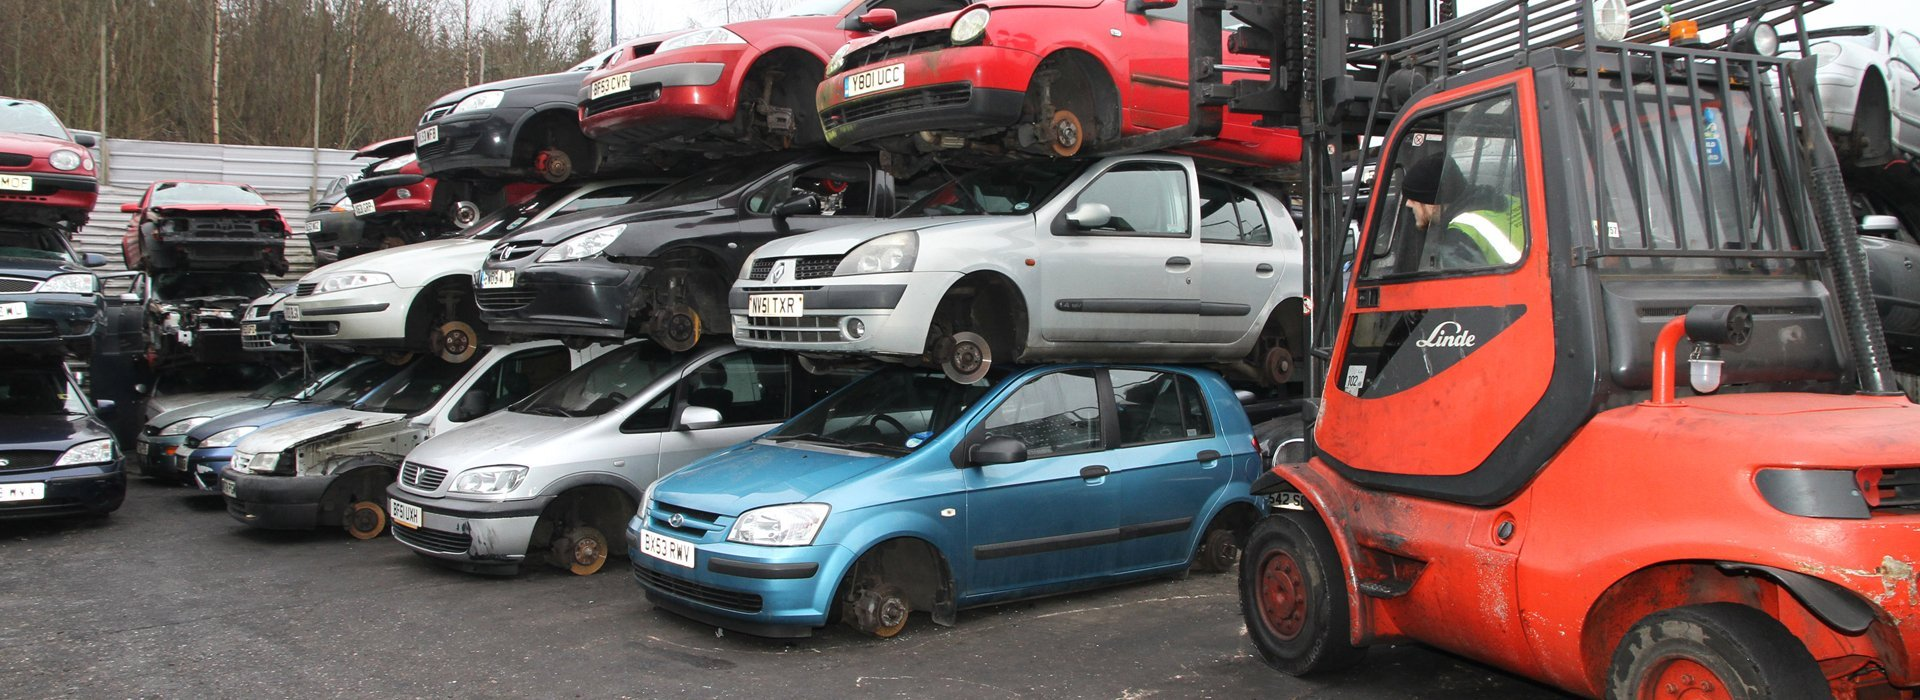 Suzuki Salvage Melbourne